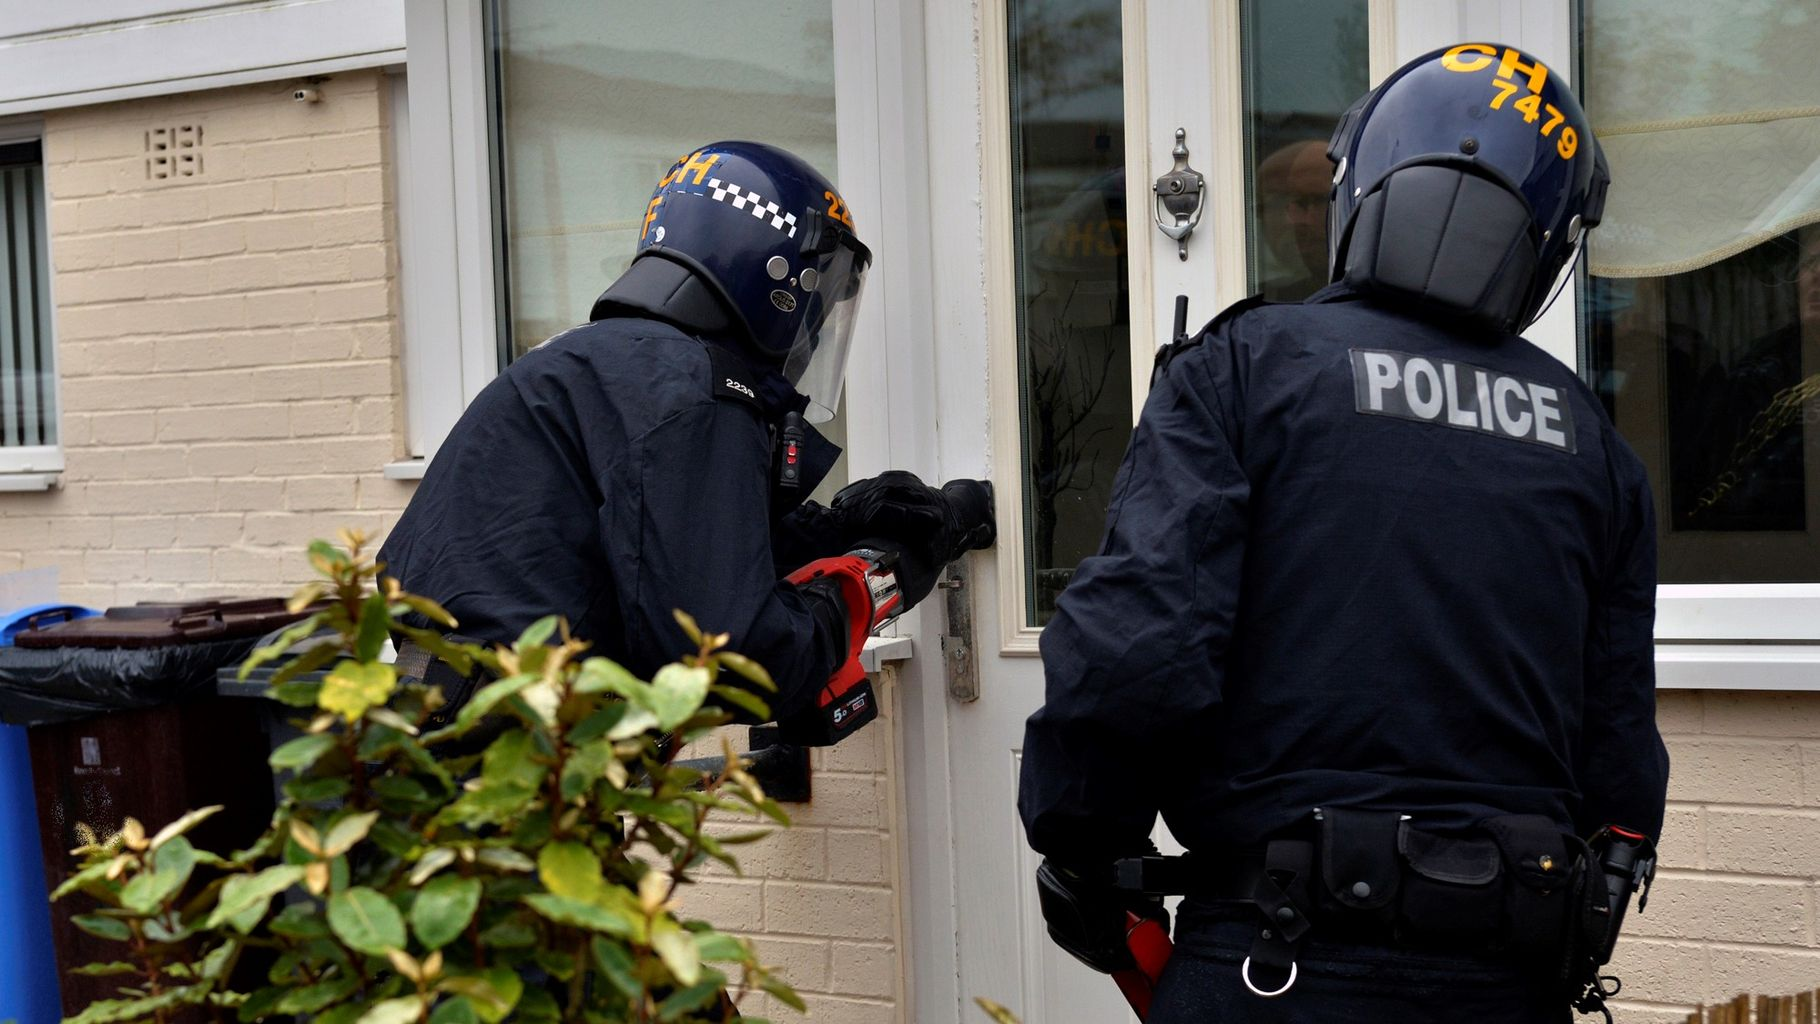 Arrests and seizures made following drugs and firearms raids across Merseyside